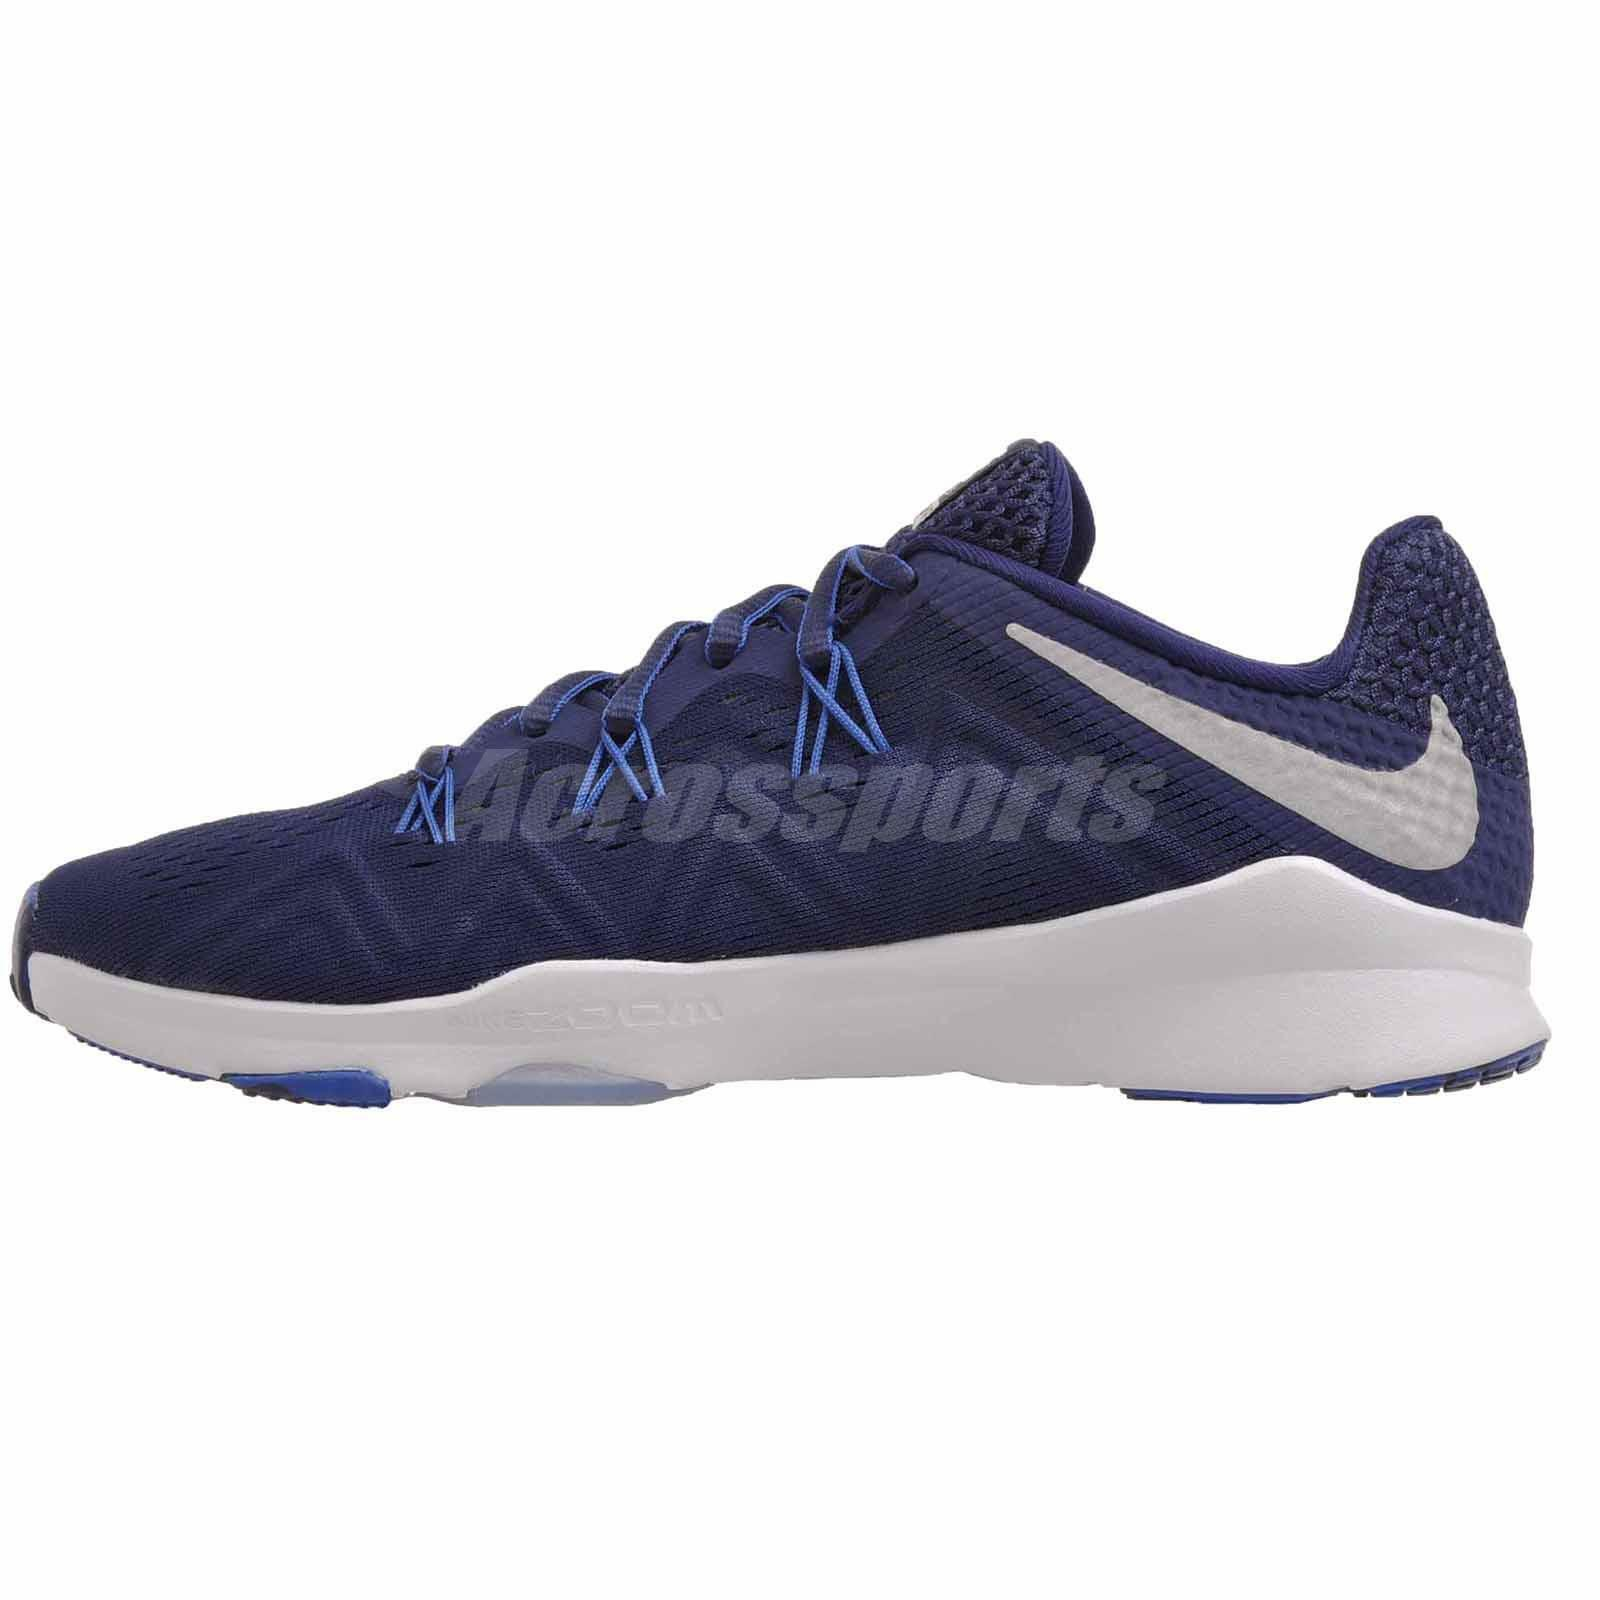 Nike W Zoom Condition TR Indigo Cross 917712-400 Training Chaussures femmes Bleu 917712-400 Cross 545c11